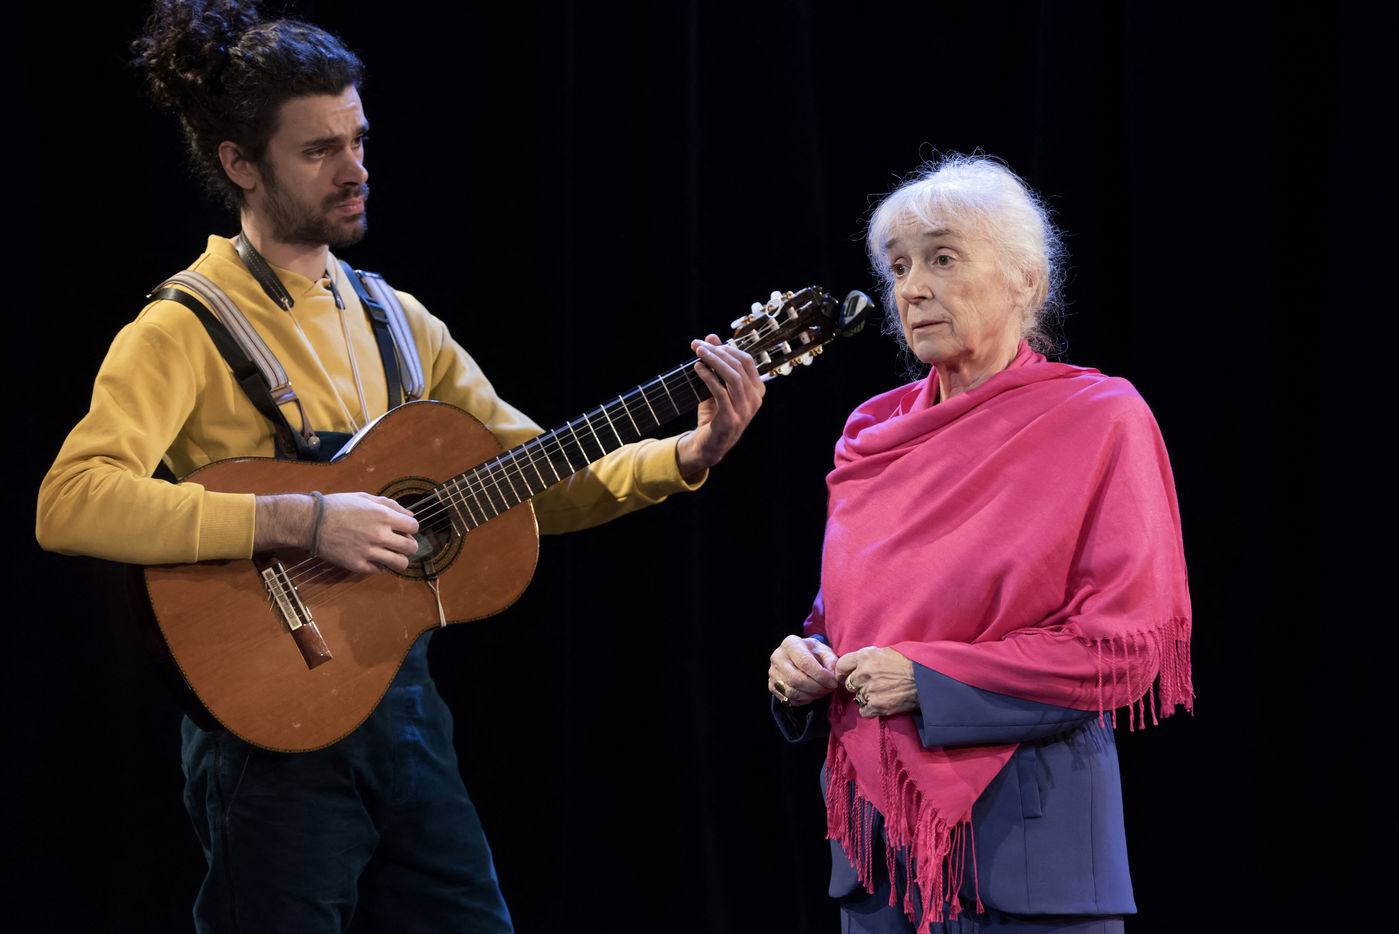 A scene of SAVANNAH BAY written by Marguerite Duras, directed by Christophe Thiry with Michele Simonnet and Ronan Richard-Kobel in Paris at the Theatre du Lucernaire on january 29, 2019. Une scene de SAVANNAH BAY texte de Marguerite Duras, mise en scene de Christophe Thiry avec Michele Simonnet et Ronan Richard-Kobel a Paris au Theatre du Lucernaire le 29 janvier 2019.